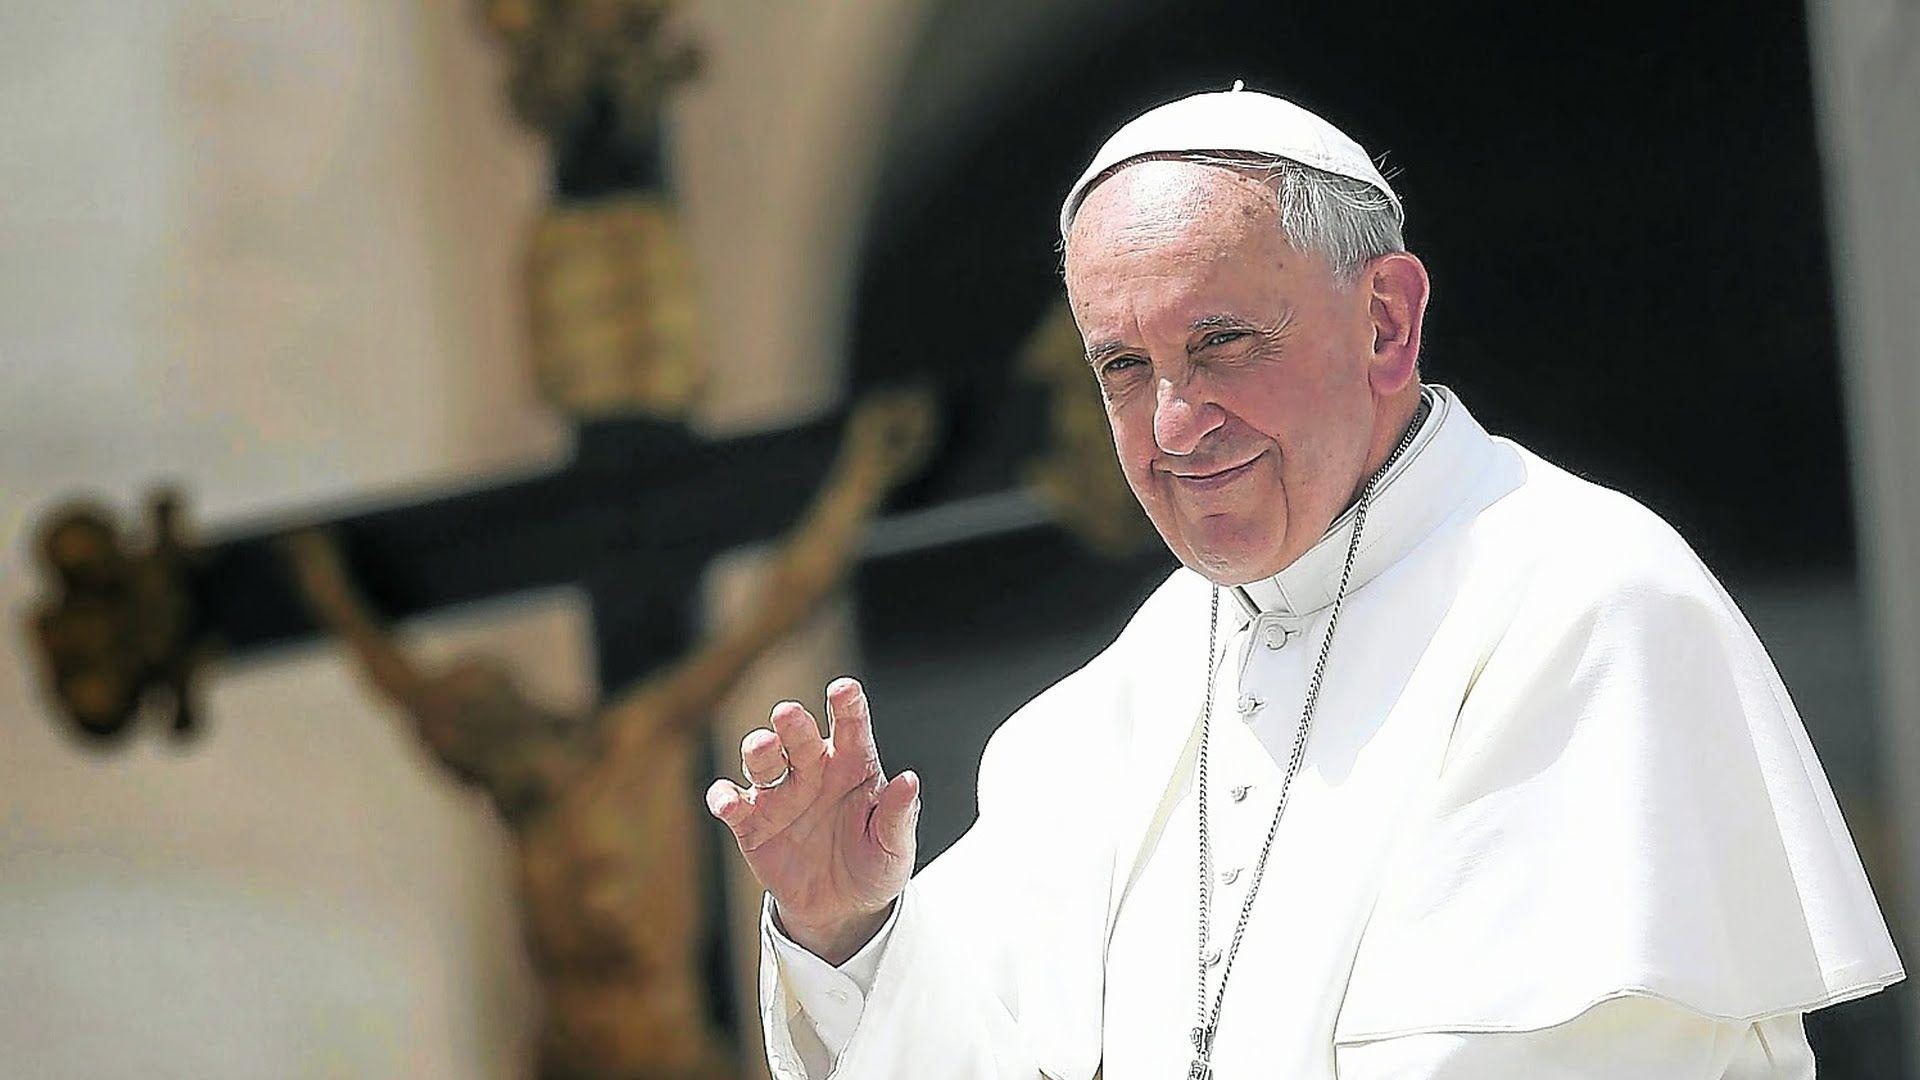 Pope Francis Wallpapers - Wallpaper Cave